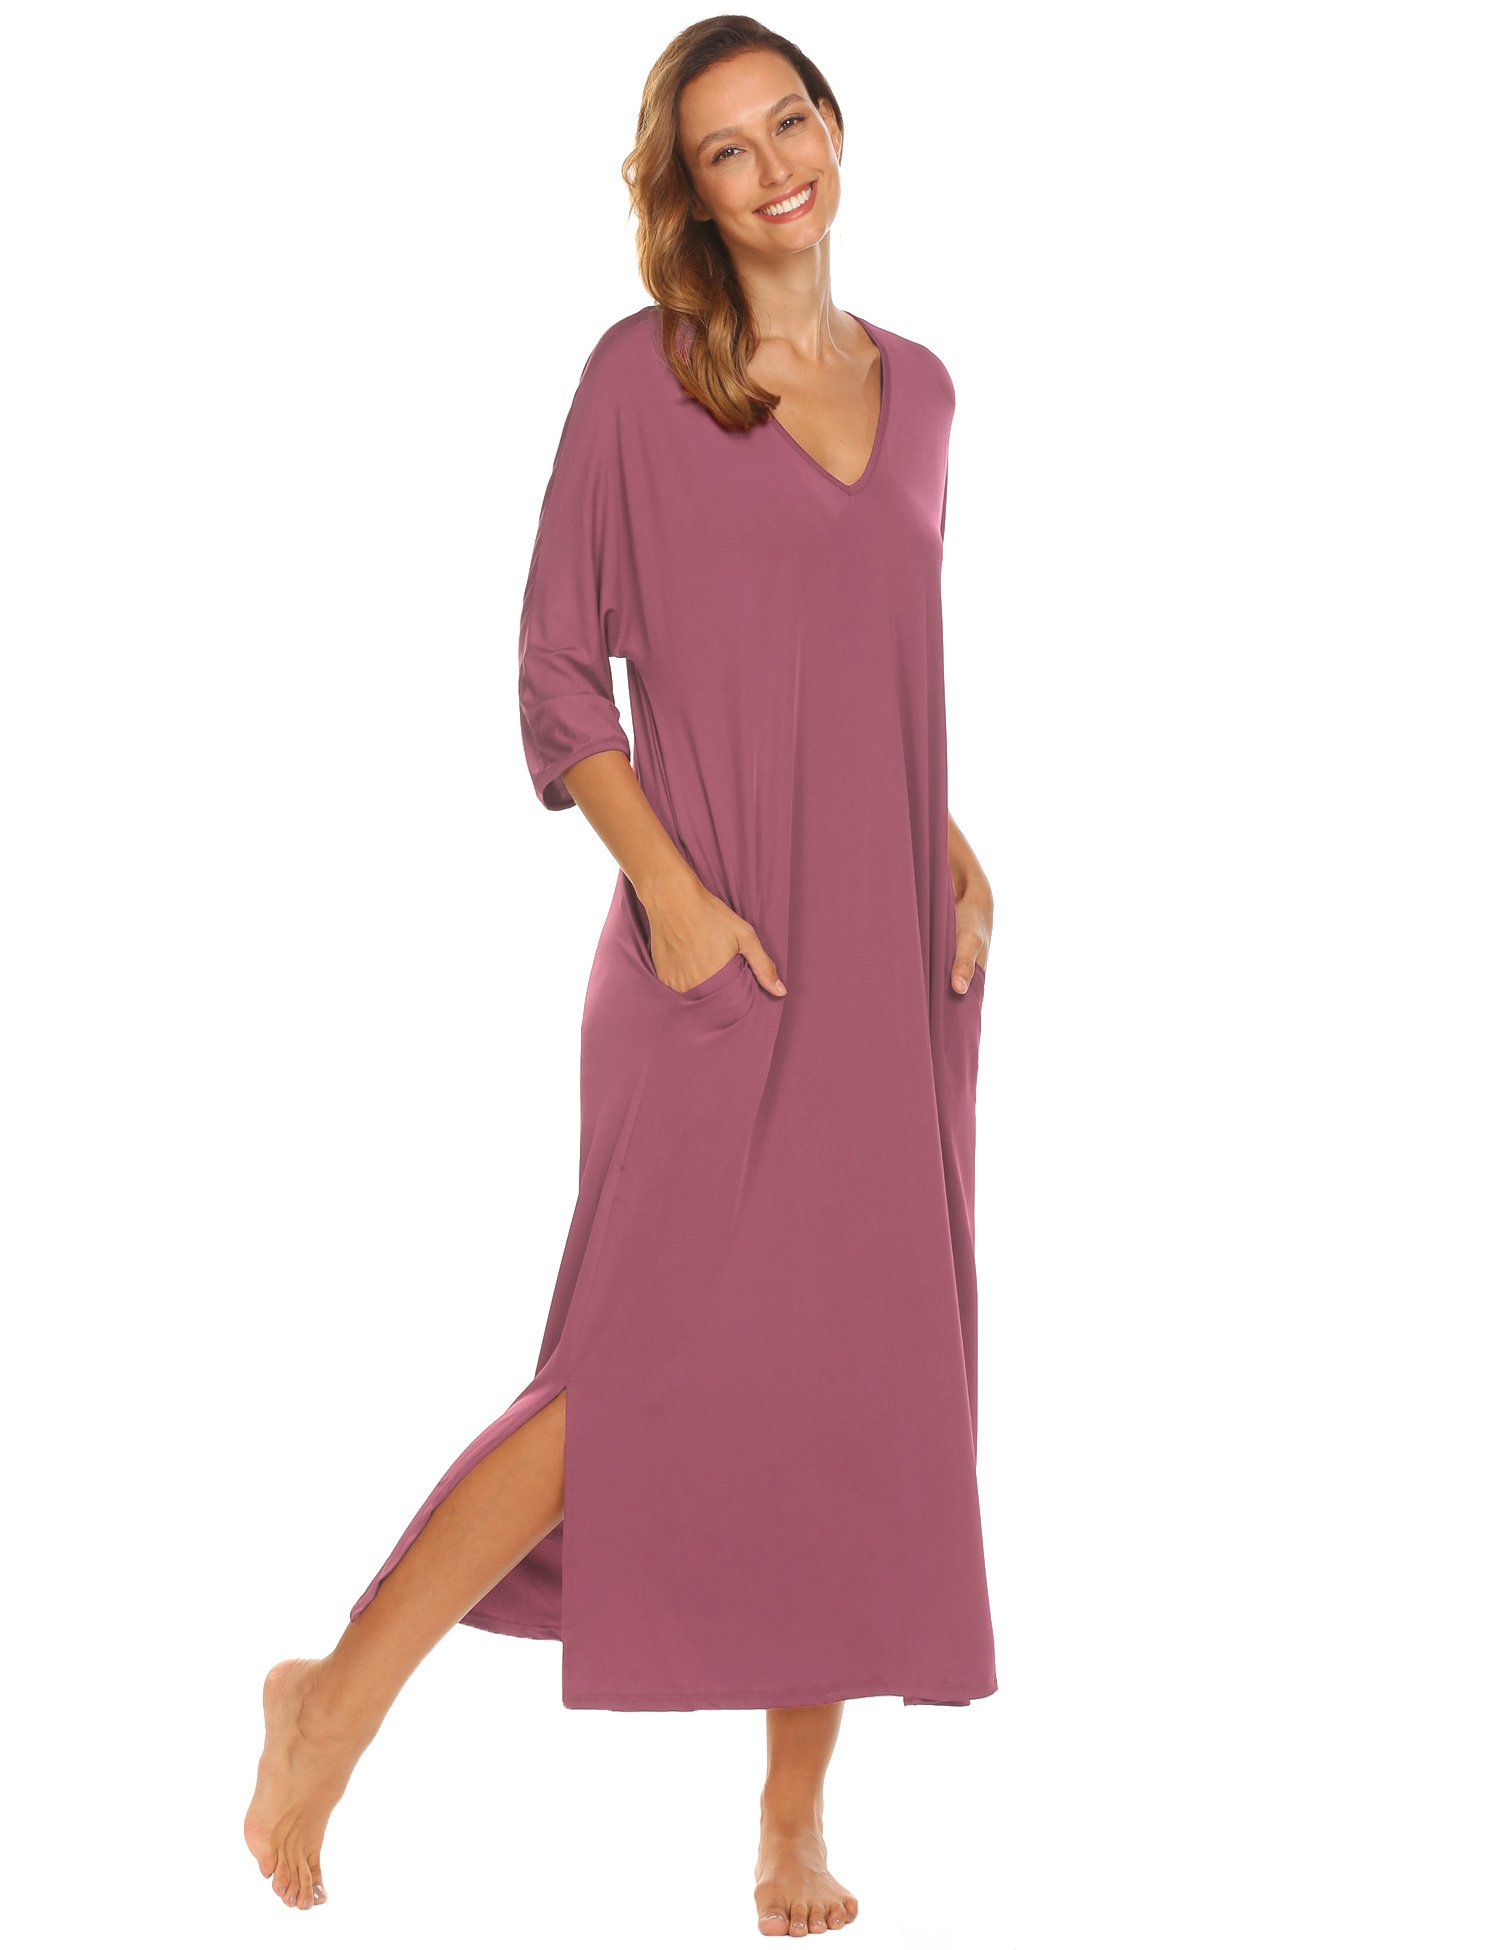 Ekouaer Sleepwear Women Half Sleeve V-Neck Solid Loose Fit Soft Nightgown,Pale Violet Red,XX-Large